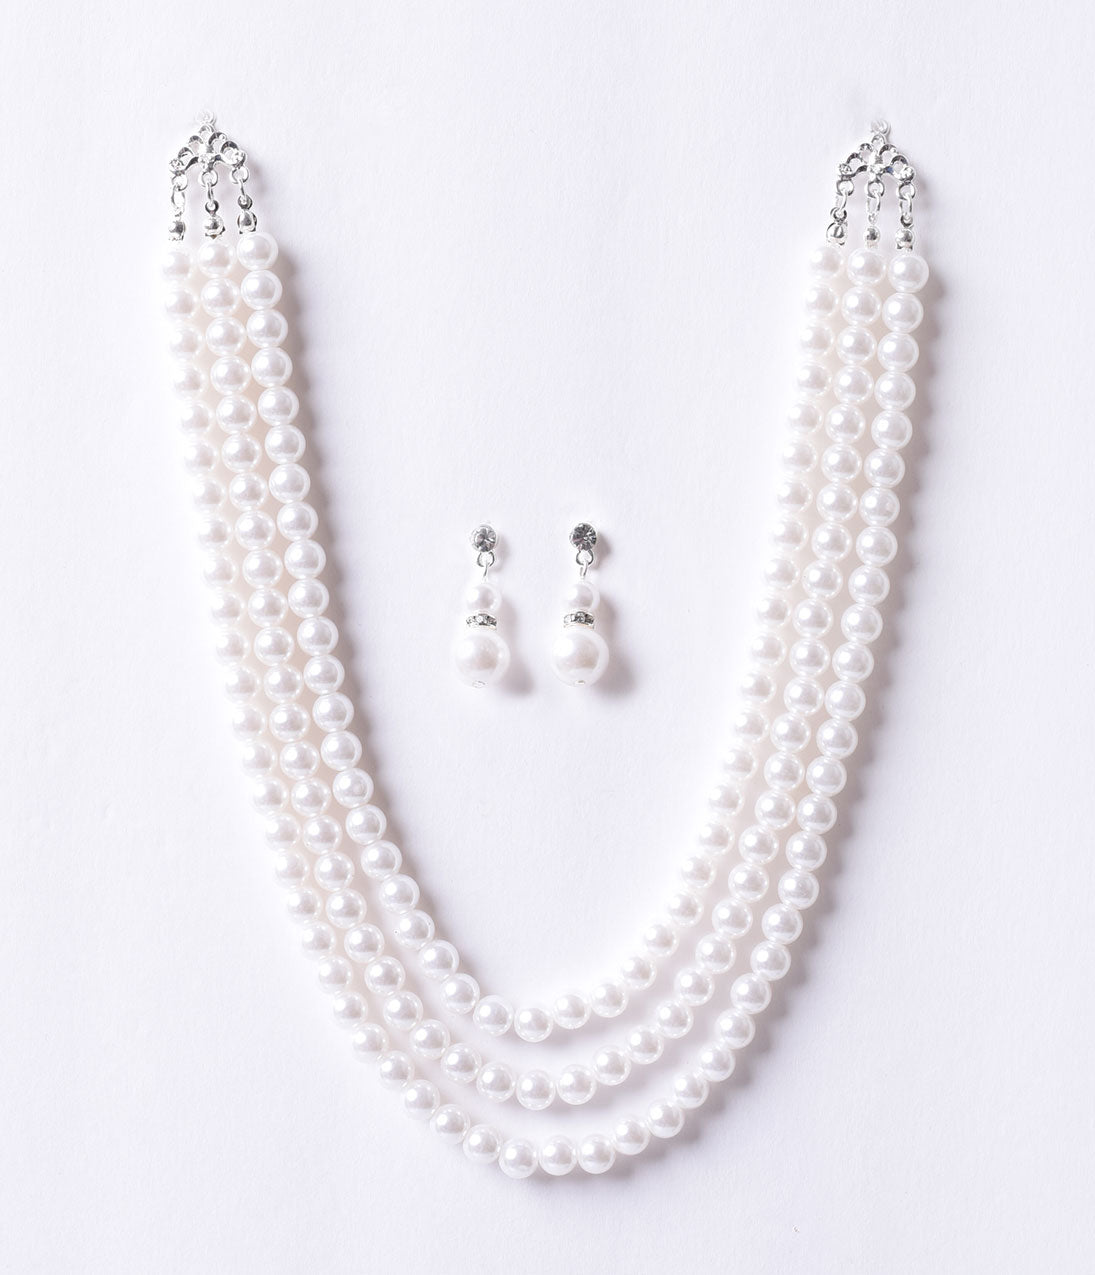 50s Jewelry: Earrings, Necklace, Brooch, Bracelet Vintage Style Ivory Triple Pearl Beaded Necklace  Earring Set $34.00 AT vintagedancer.com